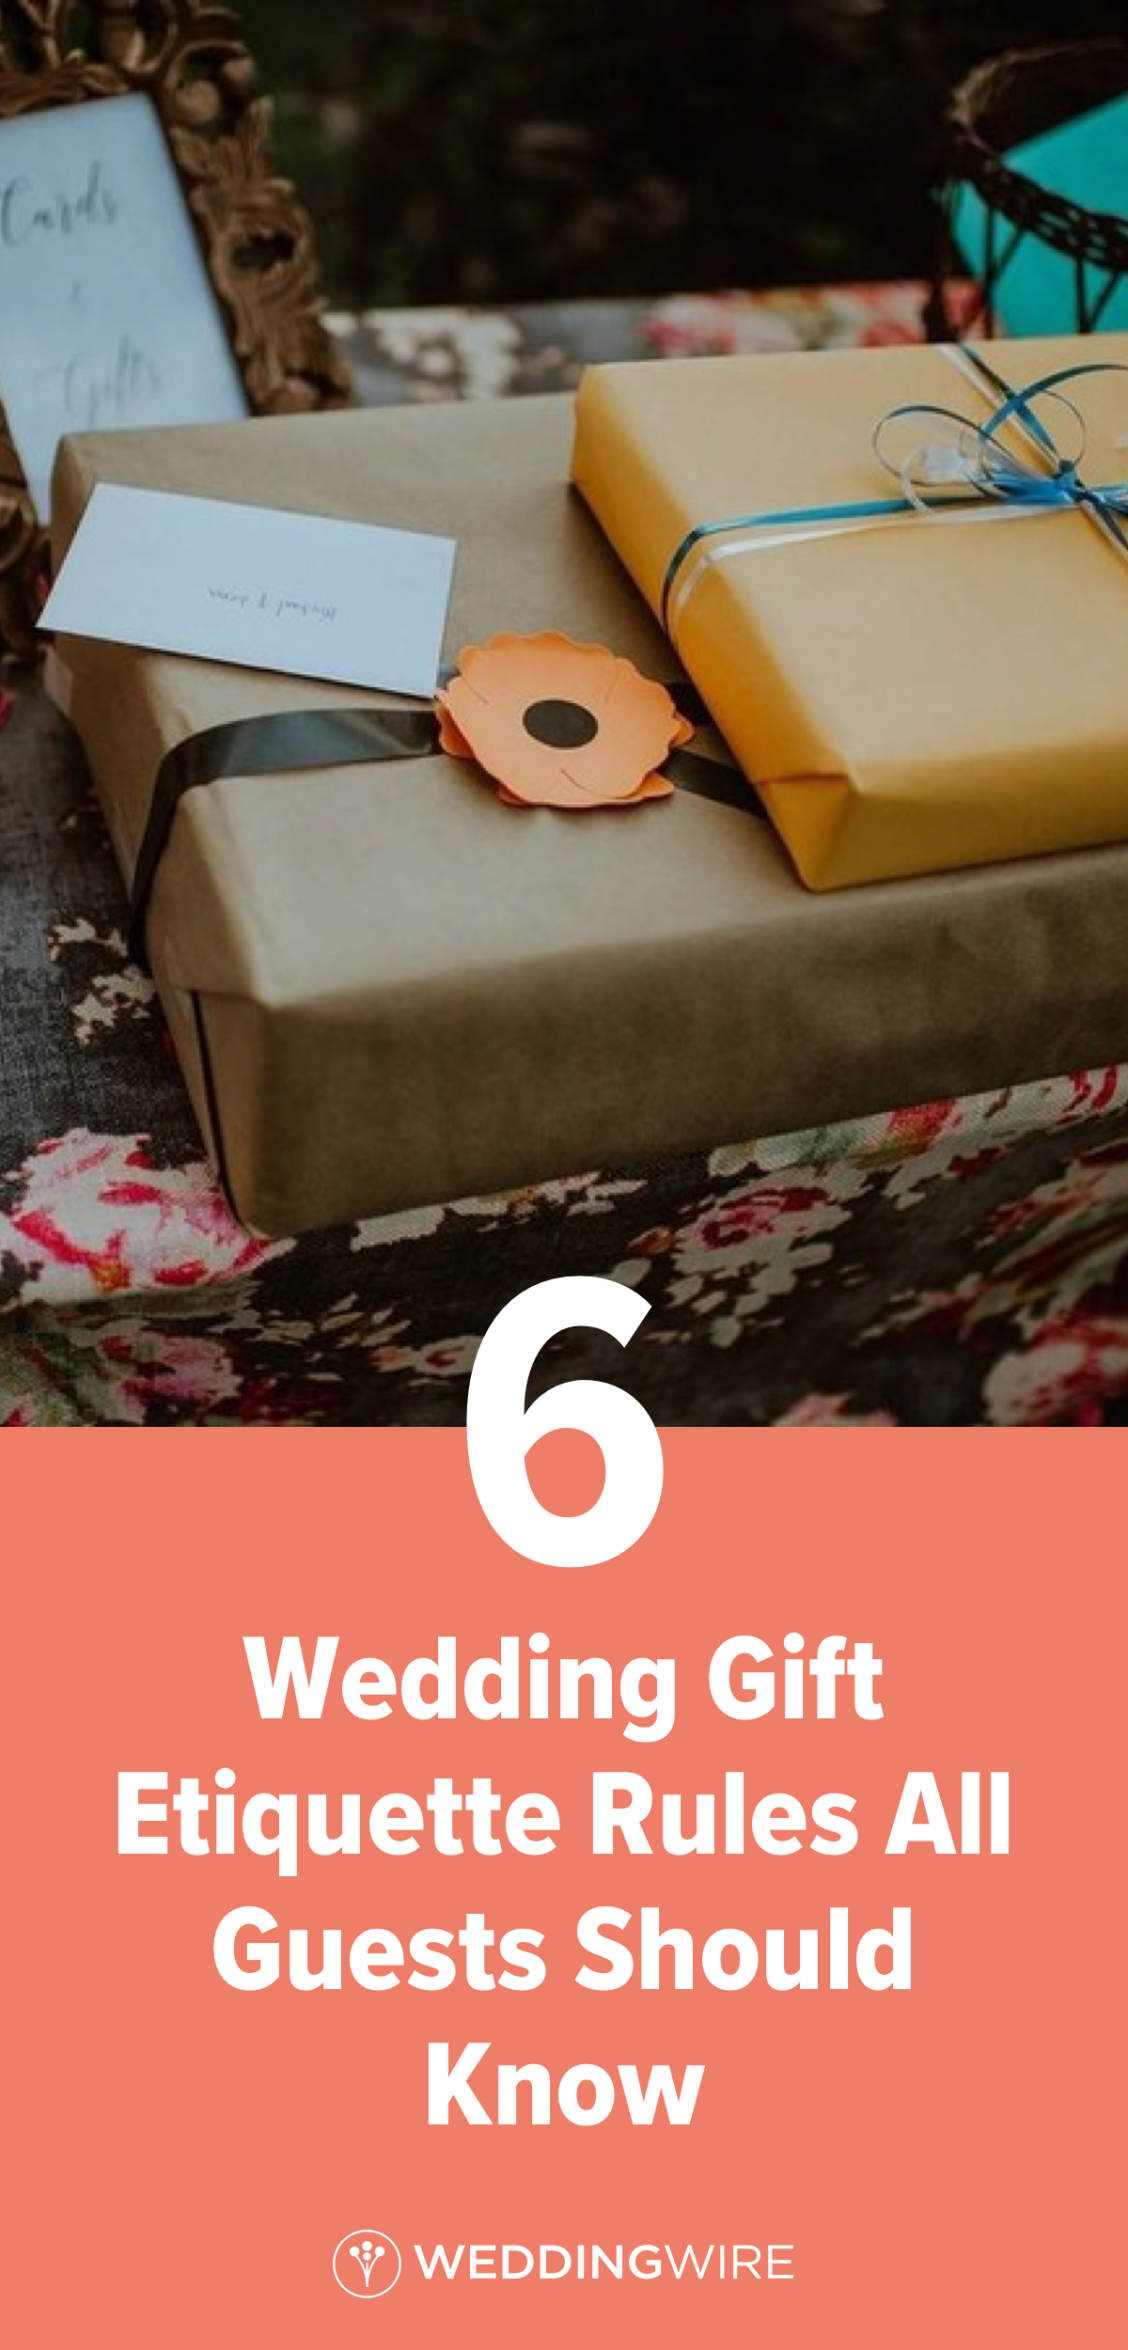 6 Wedding Gift Etiquette Rules All Guests Should Know In 2020 Wedding Gift Etiquette Wedding Etiquette Wedding Guest Etiquette